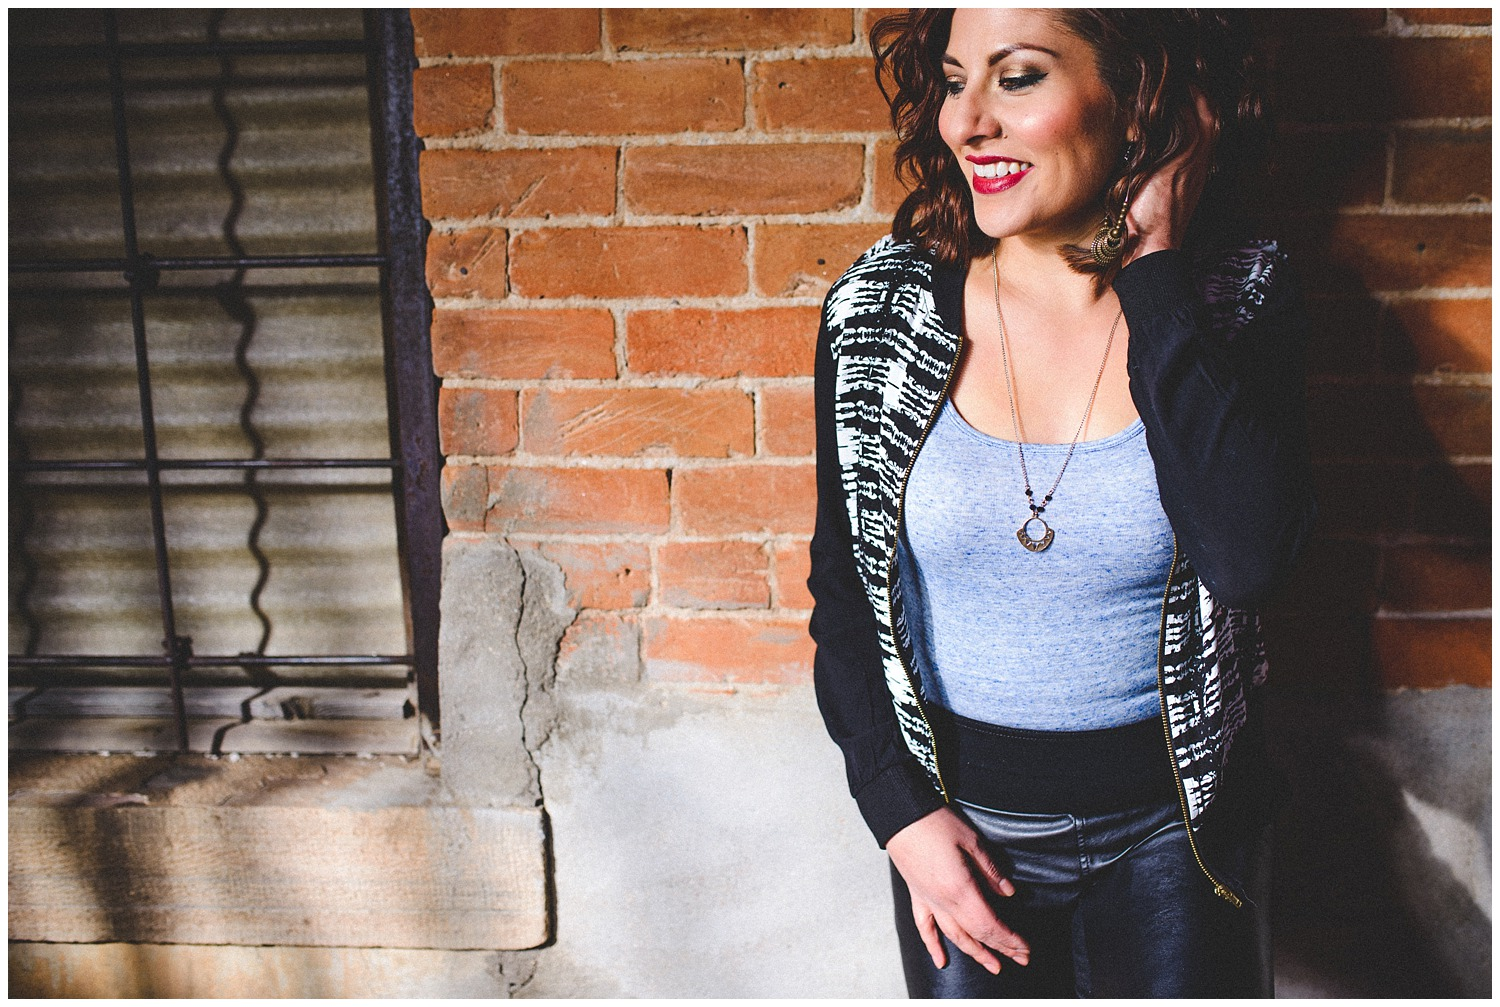 colorado urban portrait photography